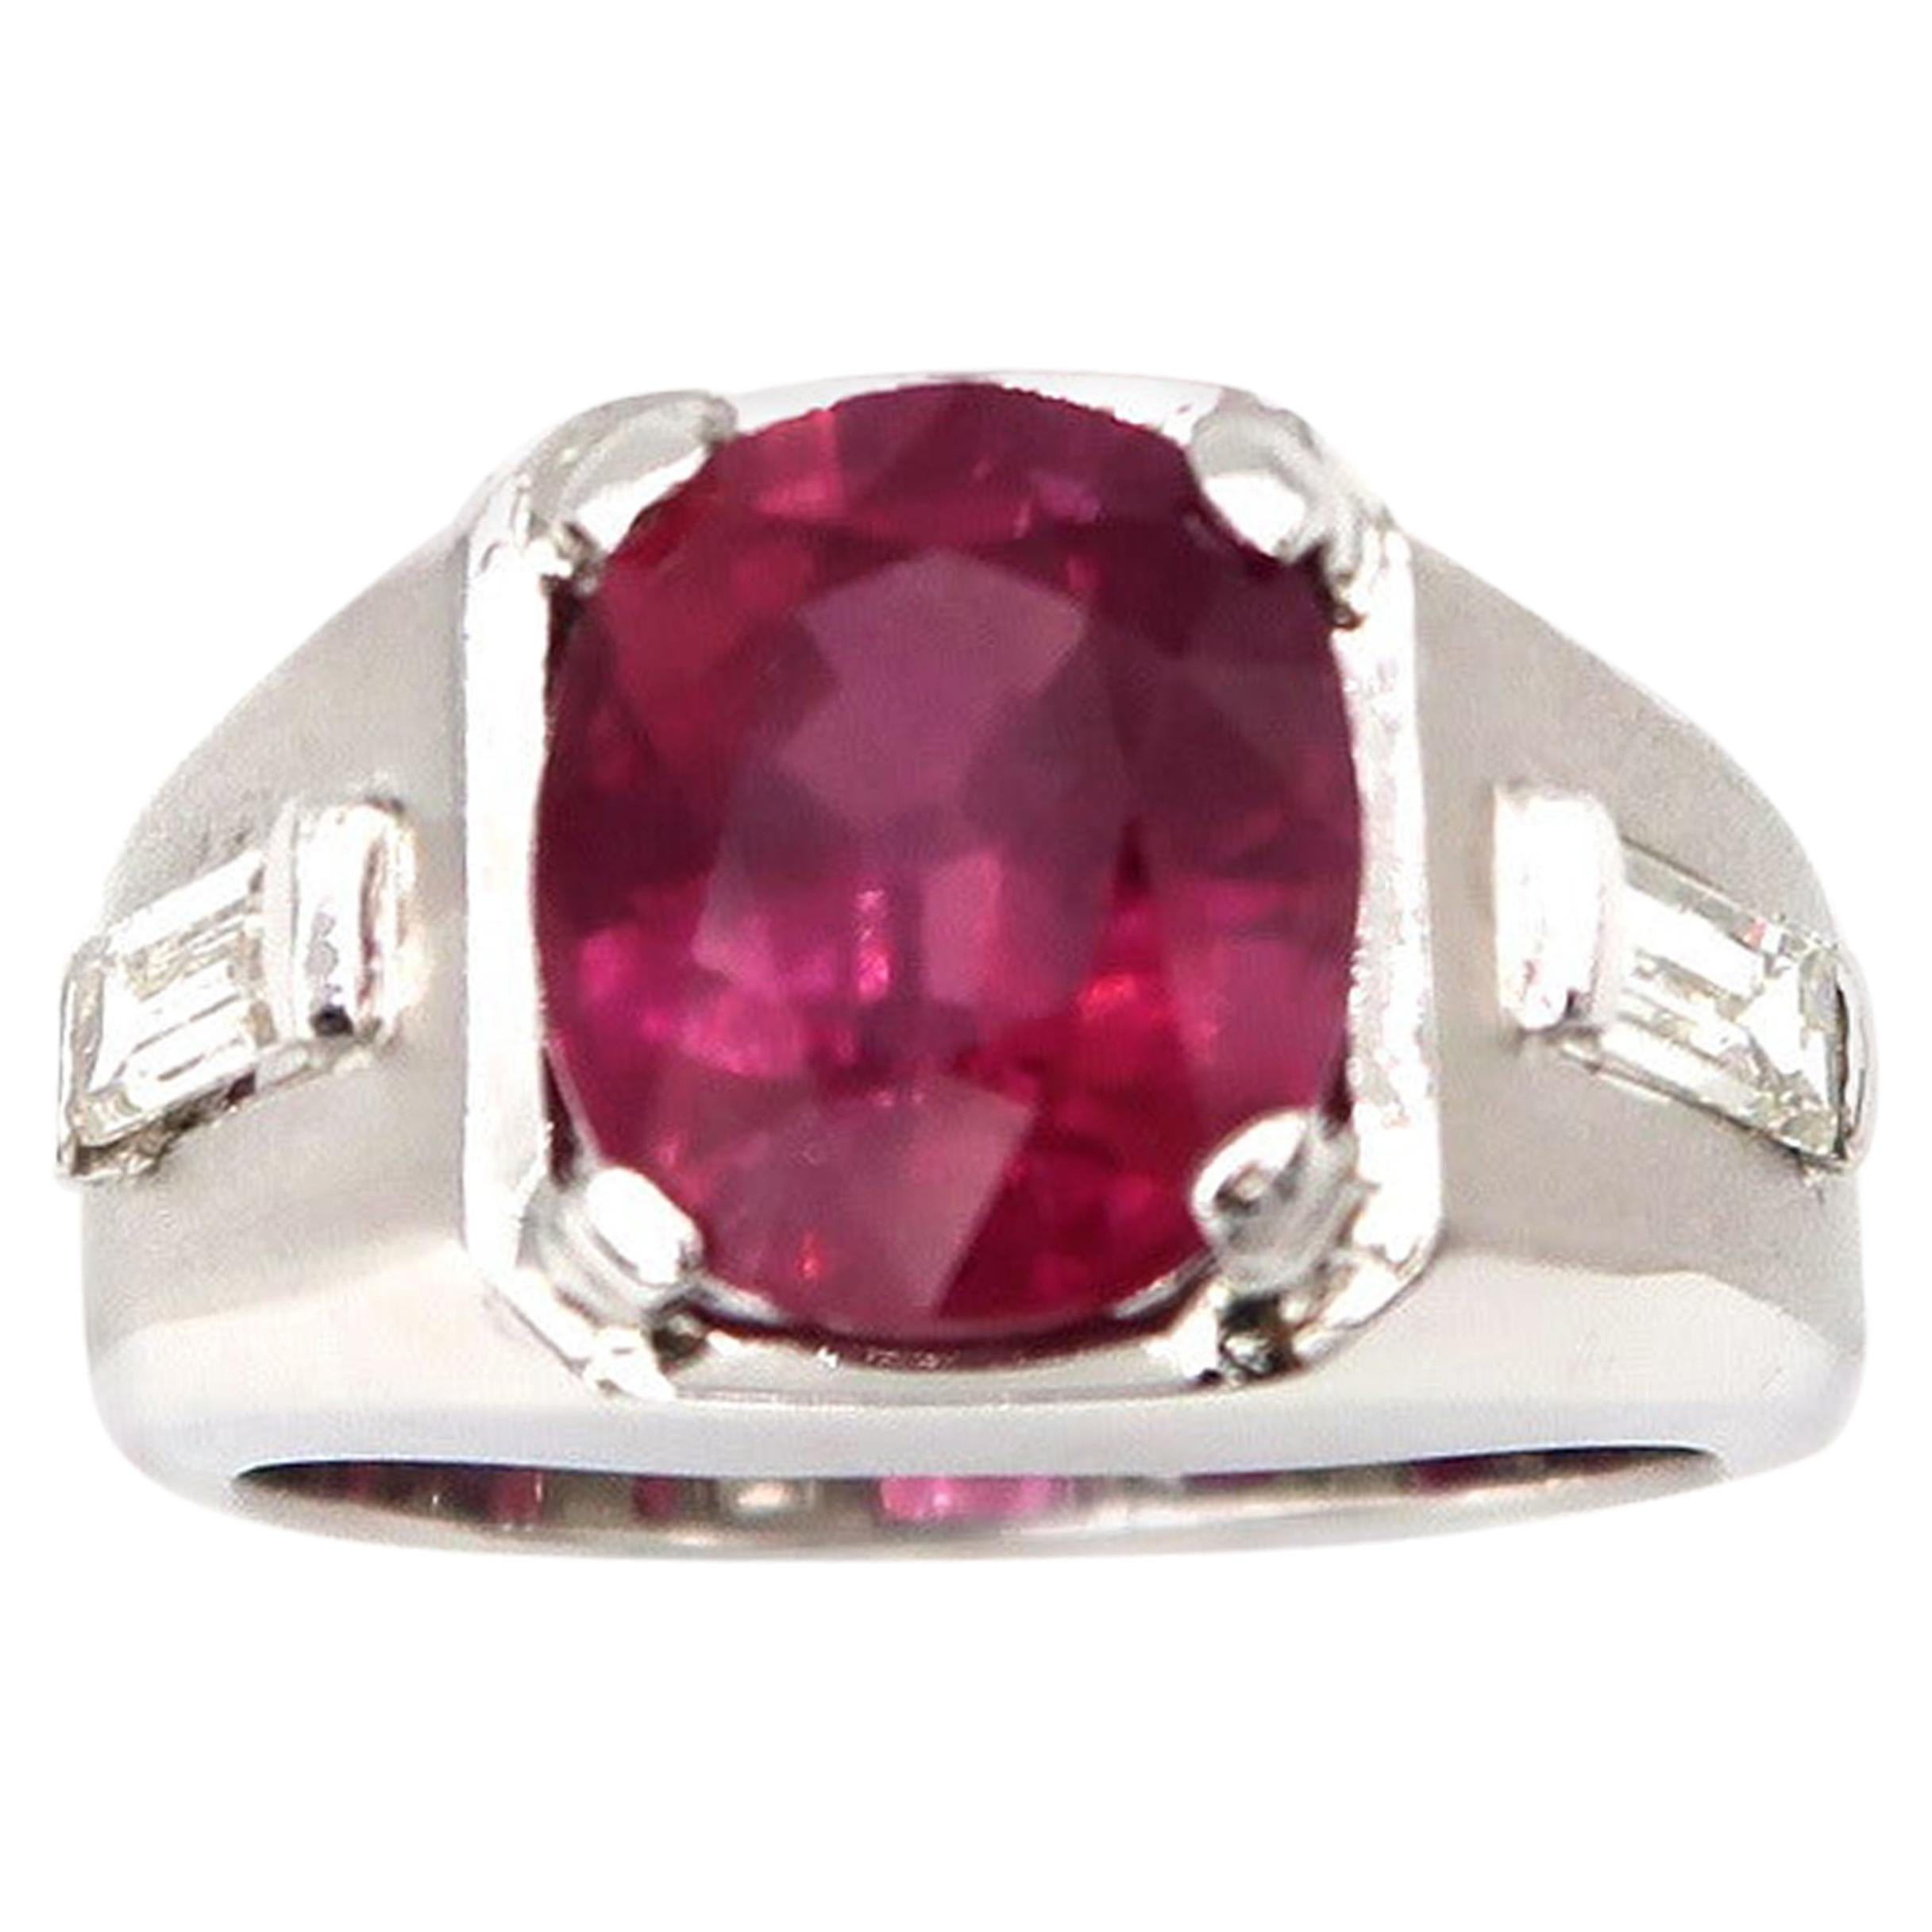 Men's Ring 6 Carat Oval Ruby Flanked by Baguette Diamonds Matte Finish 14K Gold